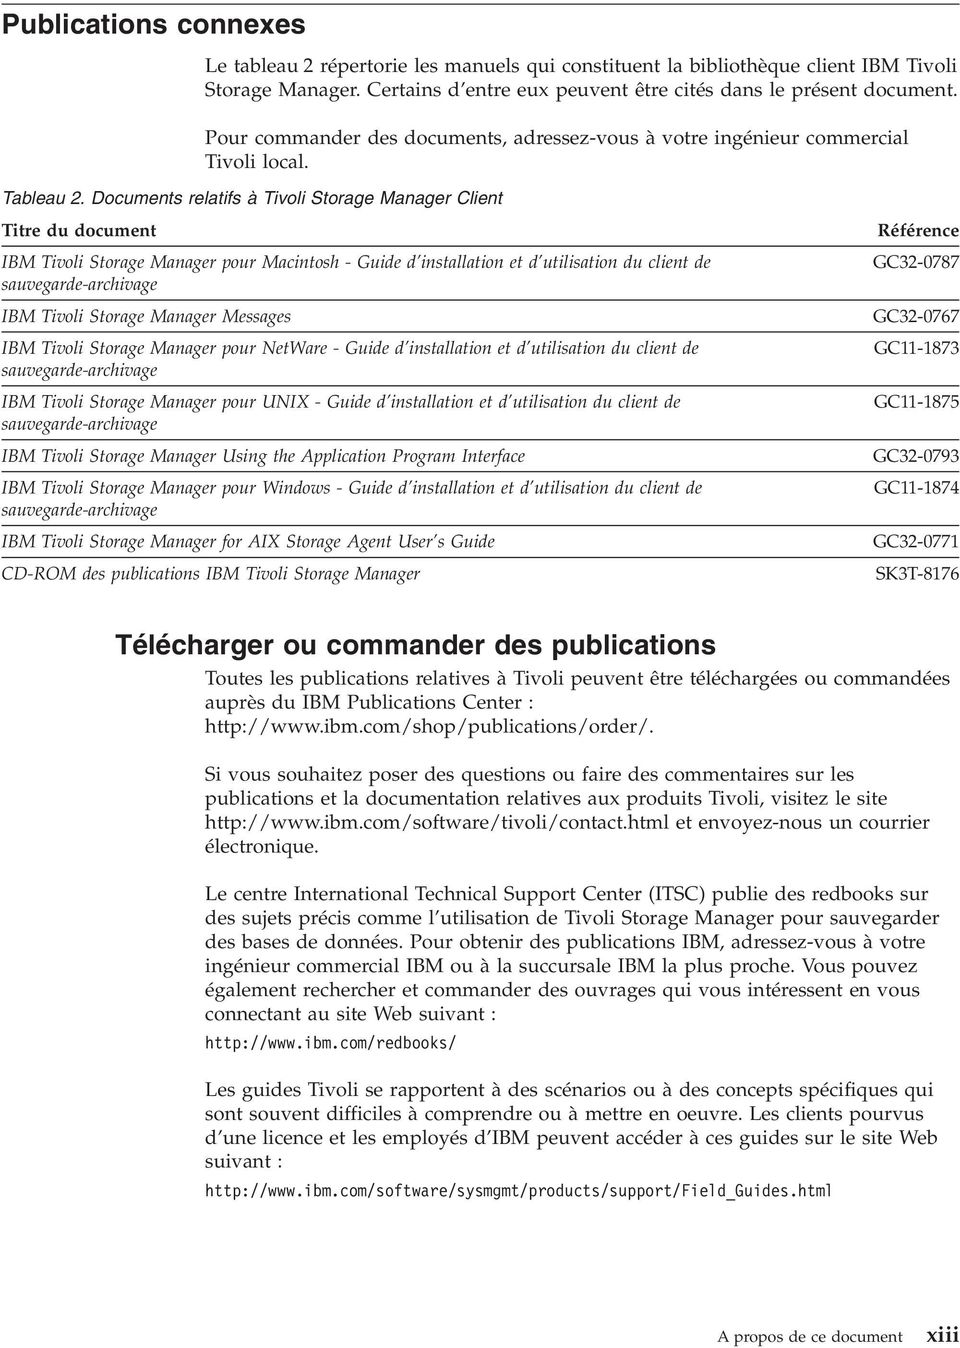 Documents relatifs à Tioli Storage Manager Client Titre du document IBM Tioli Storage Manager pour Macintosh - Guide d installation et d utilisation du client de sauegarde-archiage IBM Tioli Storage